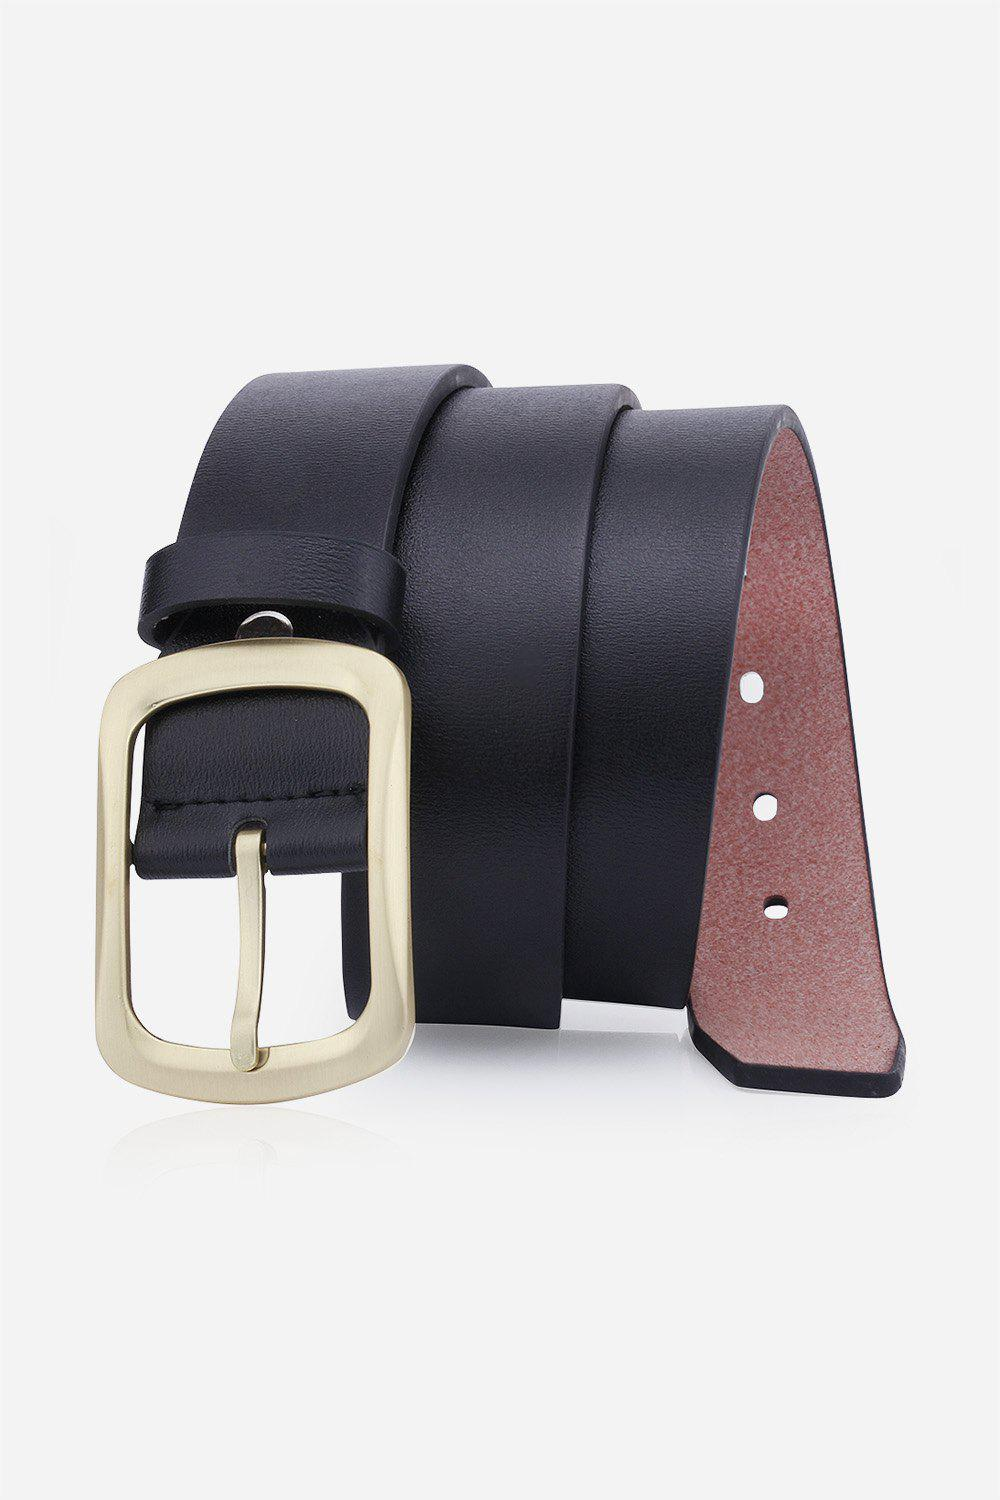 Retro Faux Leather Rectangular Pin Buckle Belt - BLACK